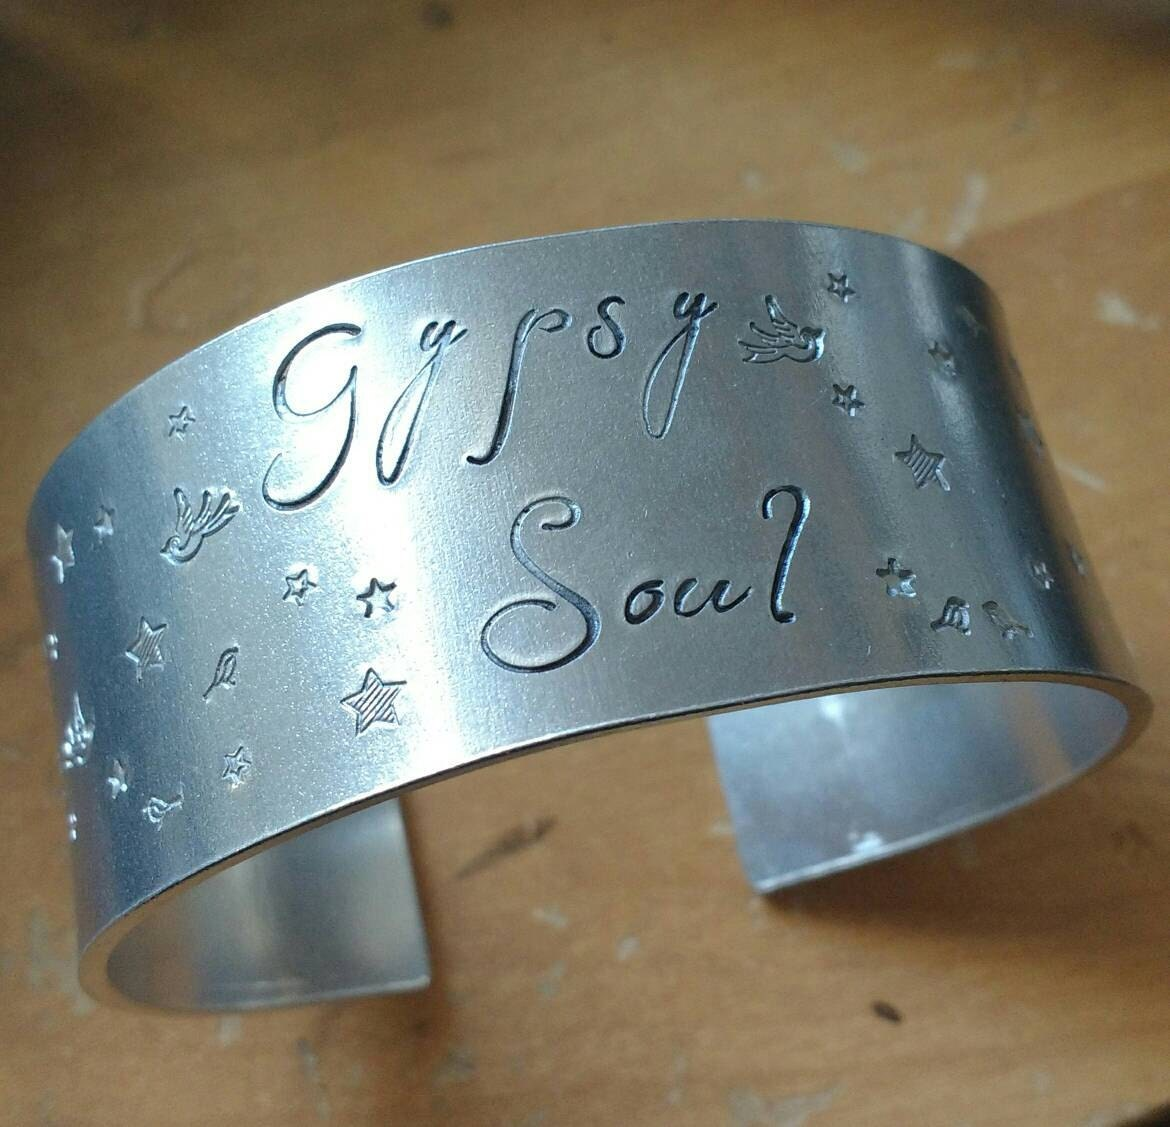 Large gypsy soul cuff bracelet - vegan bangle - 25mm wide - handstamped with bird and star pattern